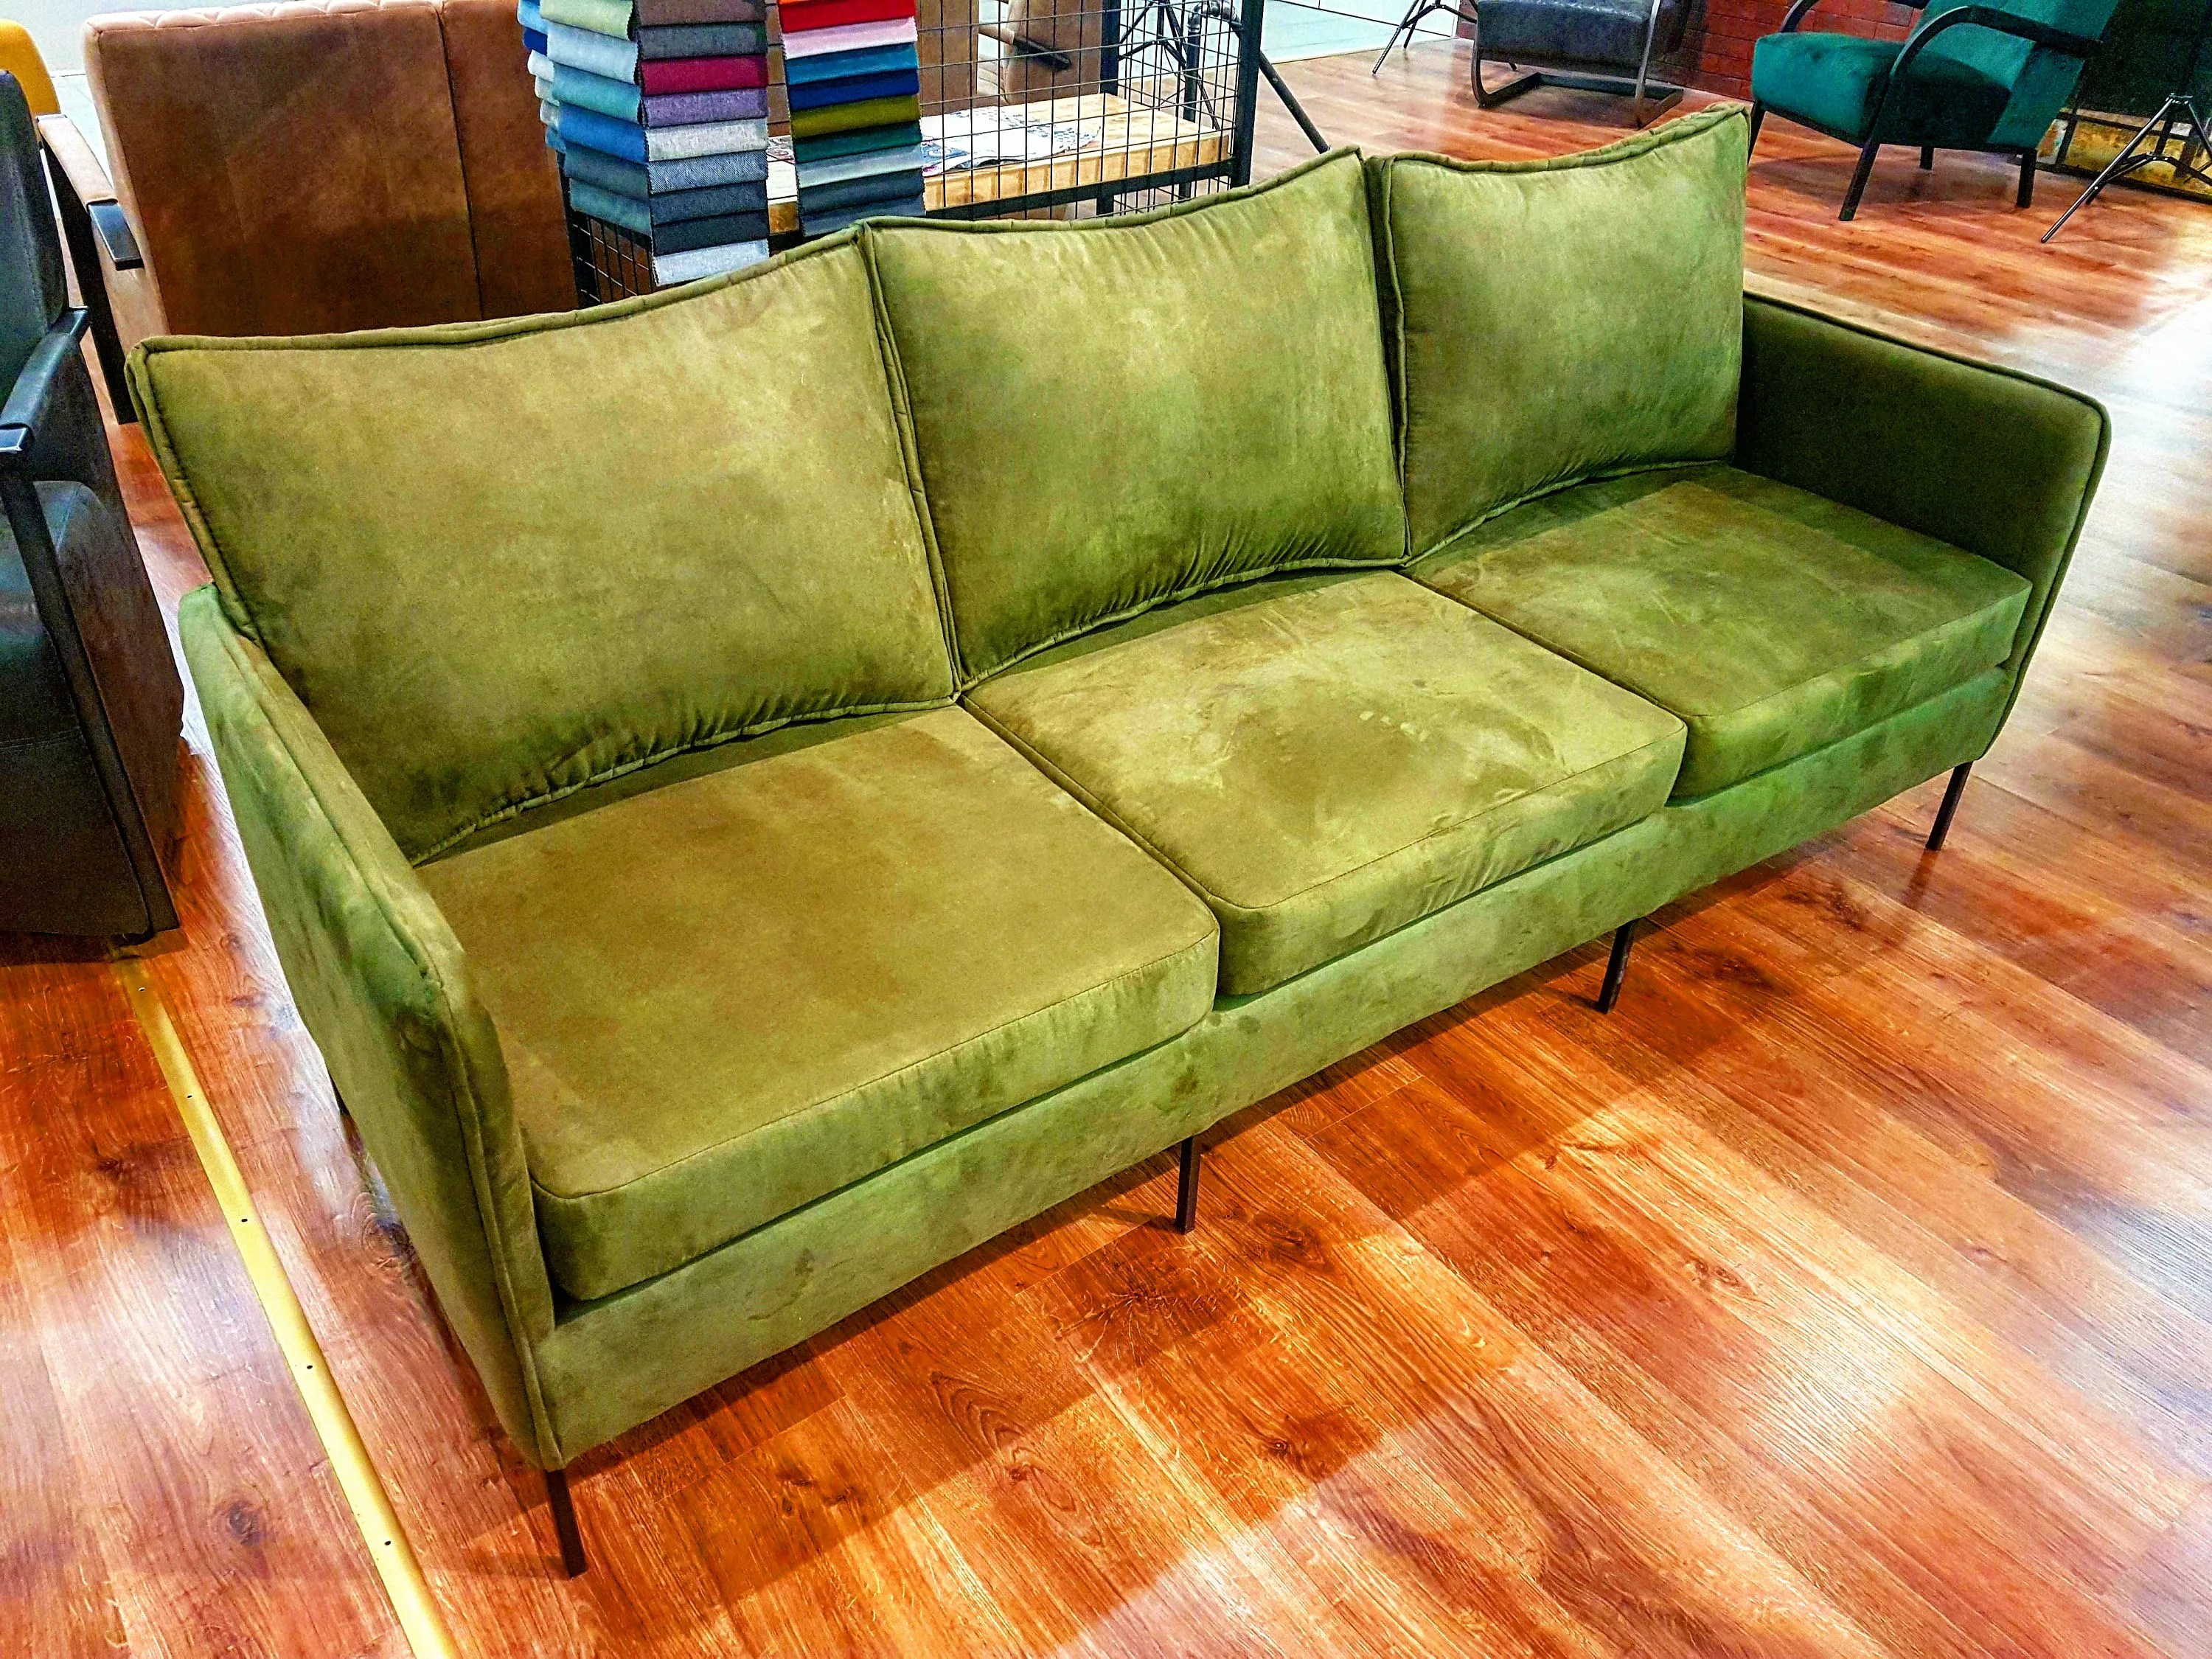 Retro Sofa Wood Sofa Vintage Green Solid Strong Metal Frame Loft Furniture Retro Green Vintage Round Industrial Scandinavian Metal Chair Wood